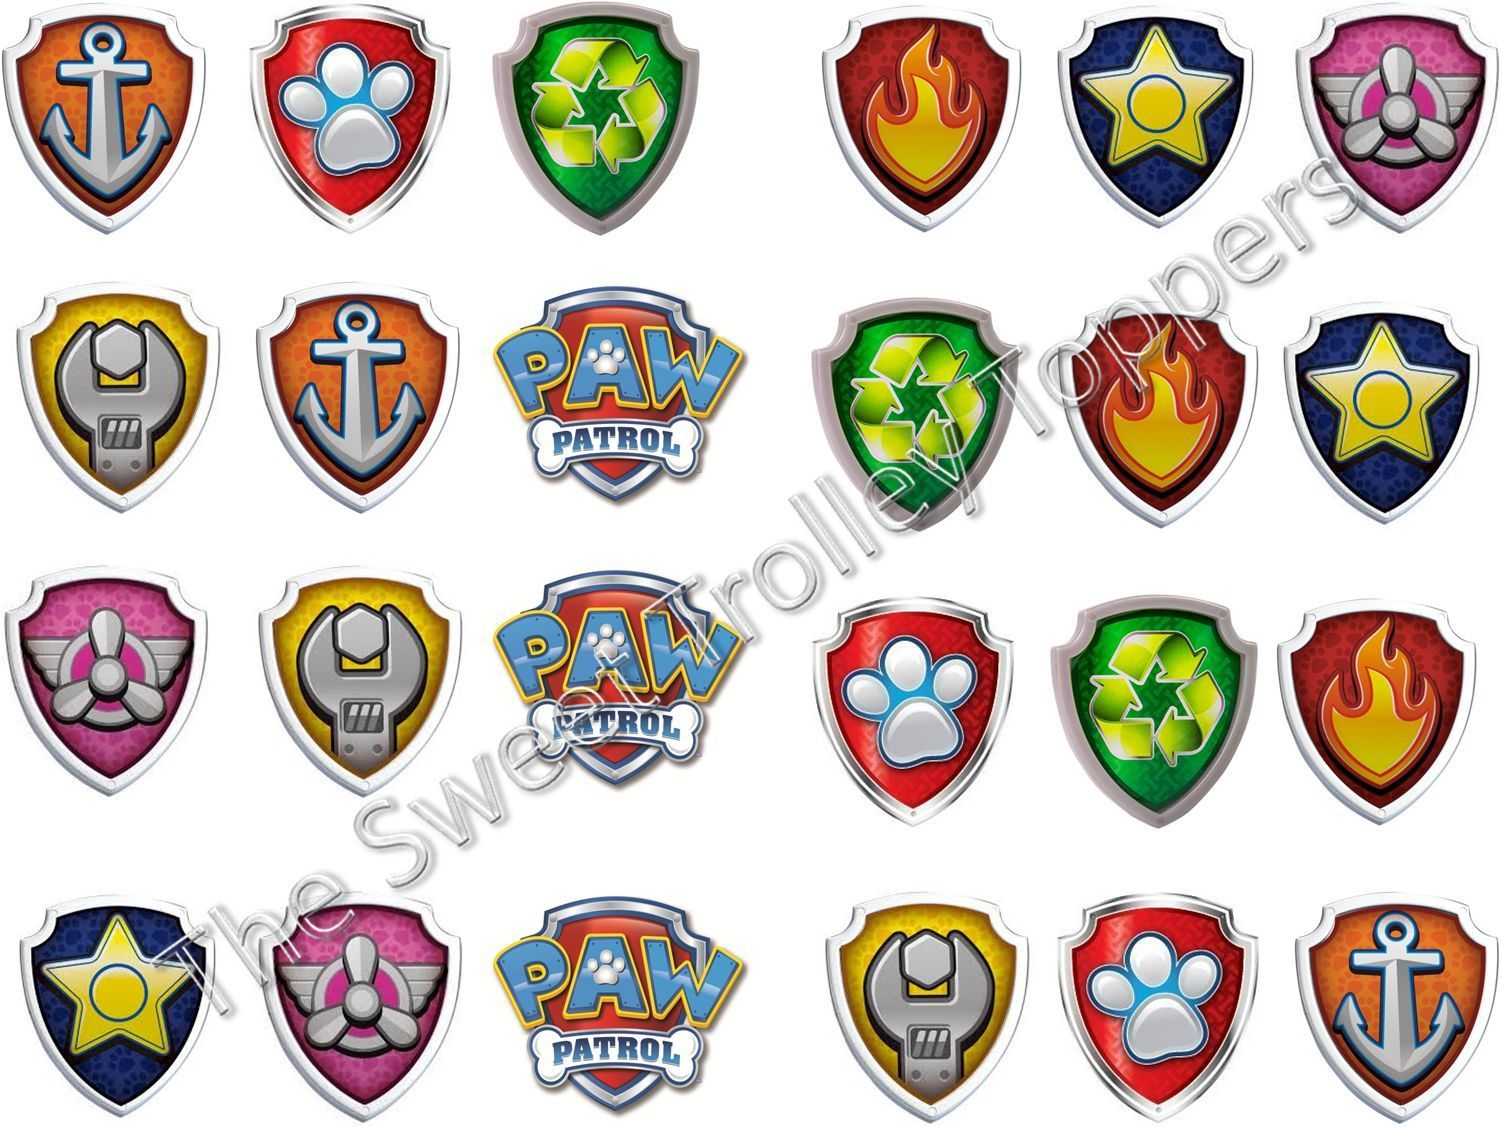 24 Paw Patrol Logo Shield Badge Edible Rice Paper Birthday Cup Cake Toppers